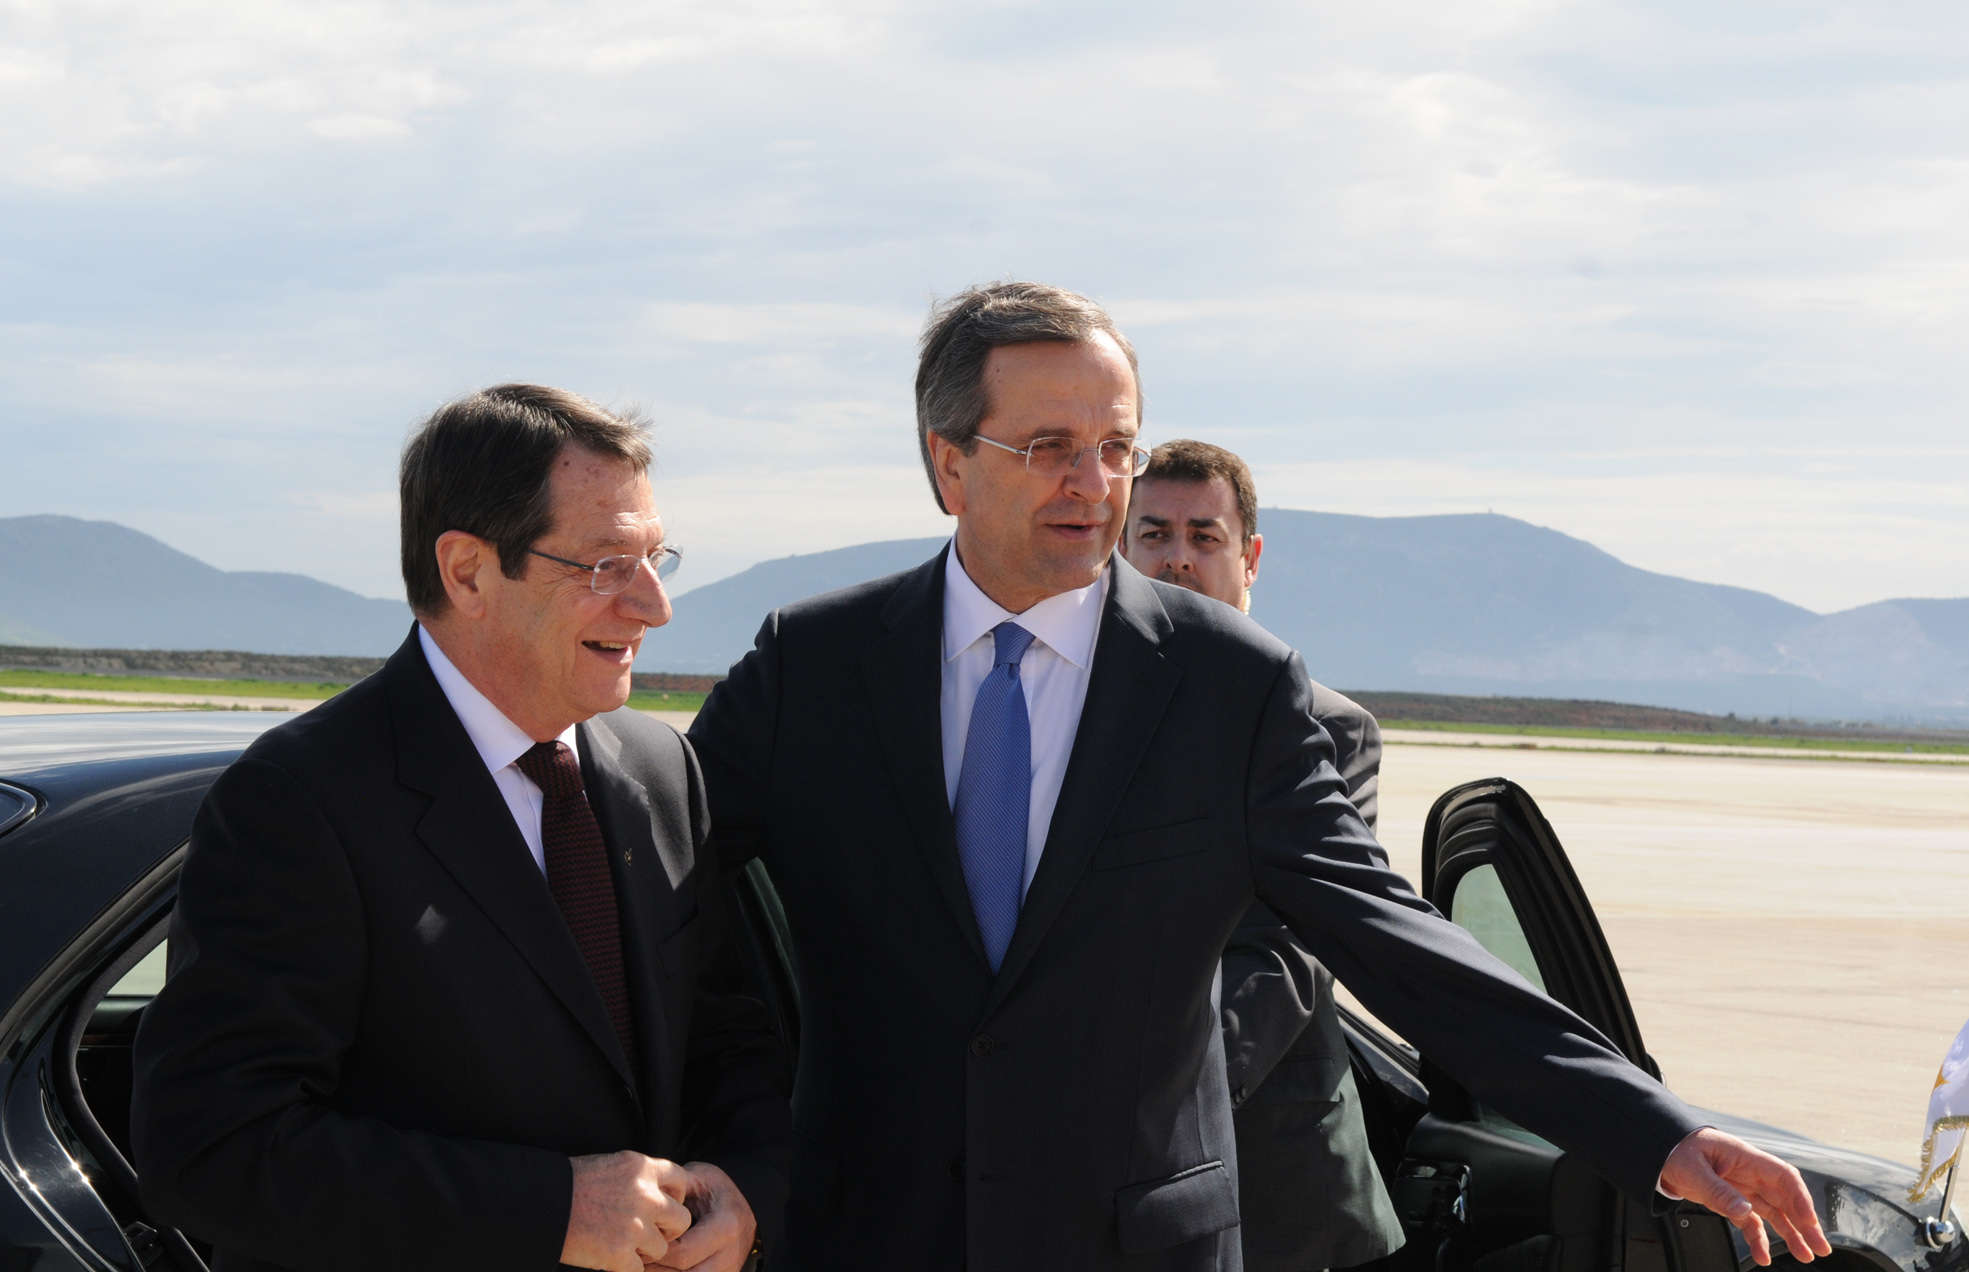 Anastasiades: The visit of Samaras to Cyprus is extremely important